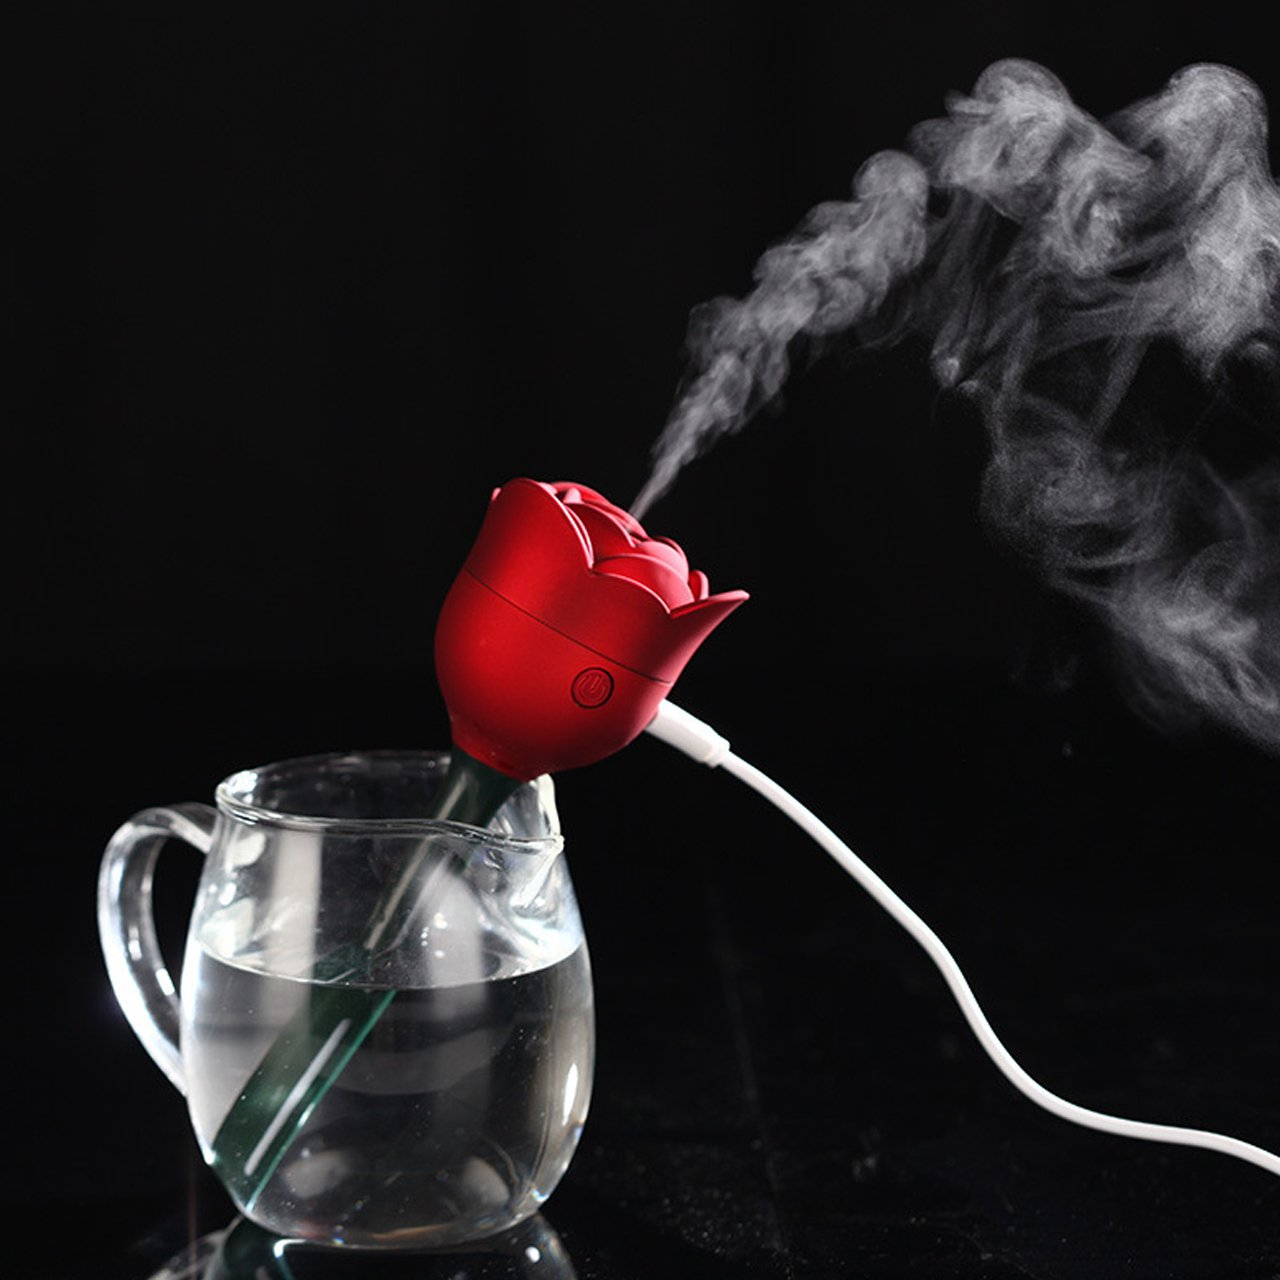 SCS ETC USB Powered Mini and Portable Cool Mist Rose Humidifier-Super Quiet Operation-Red